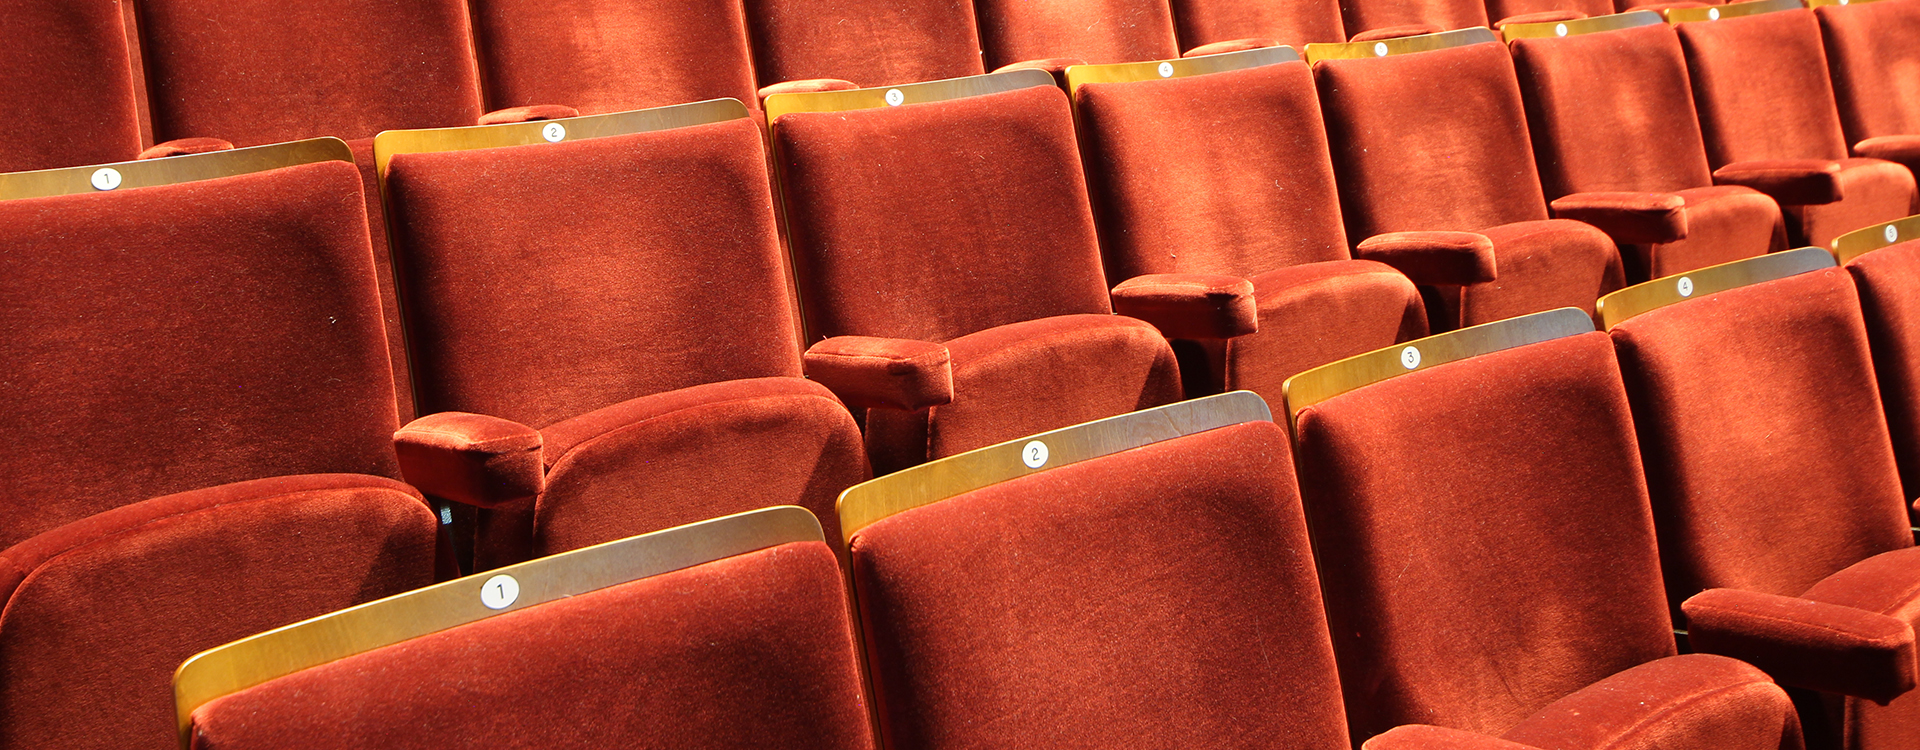 enCore Theatre Seating